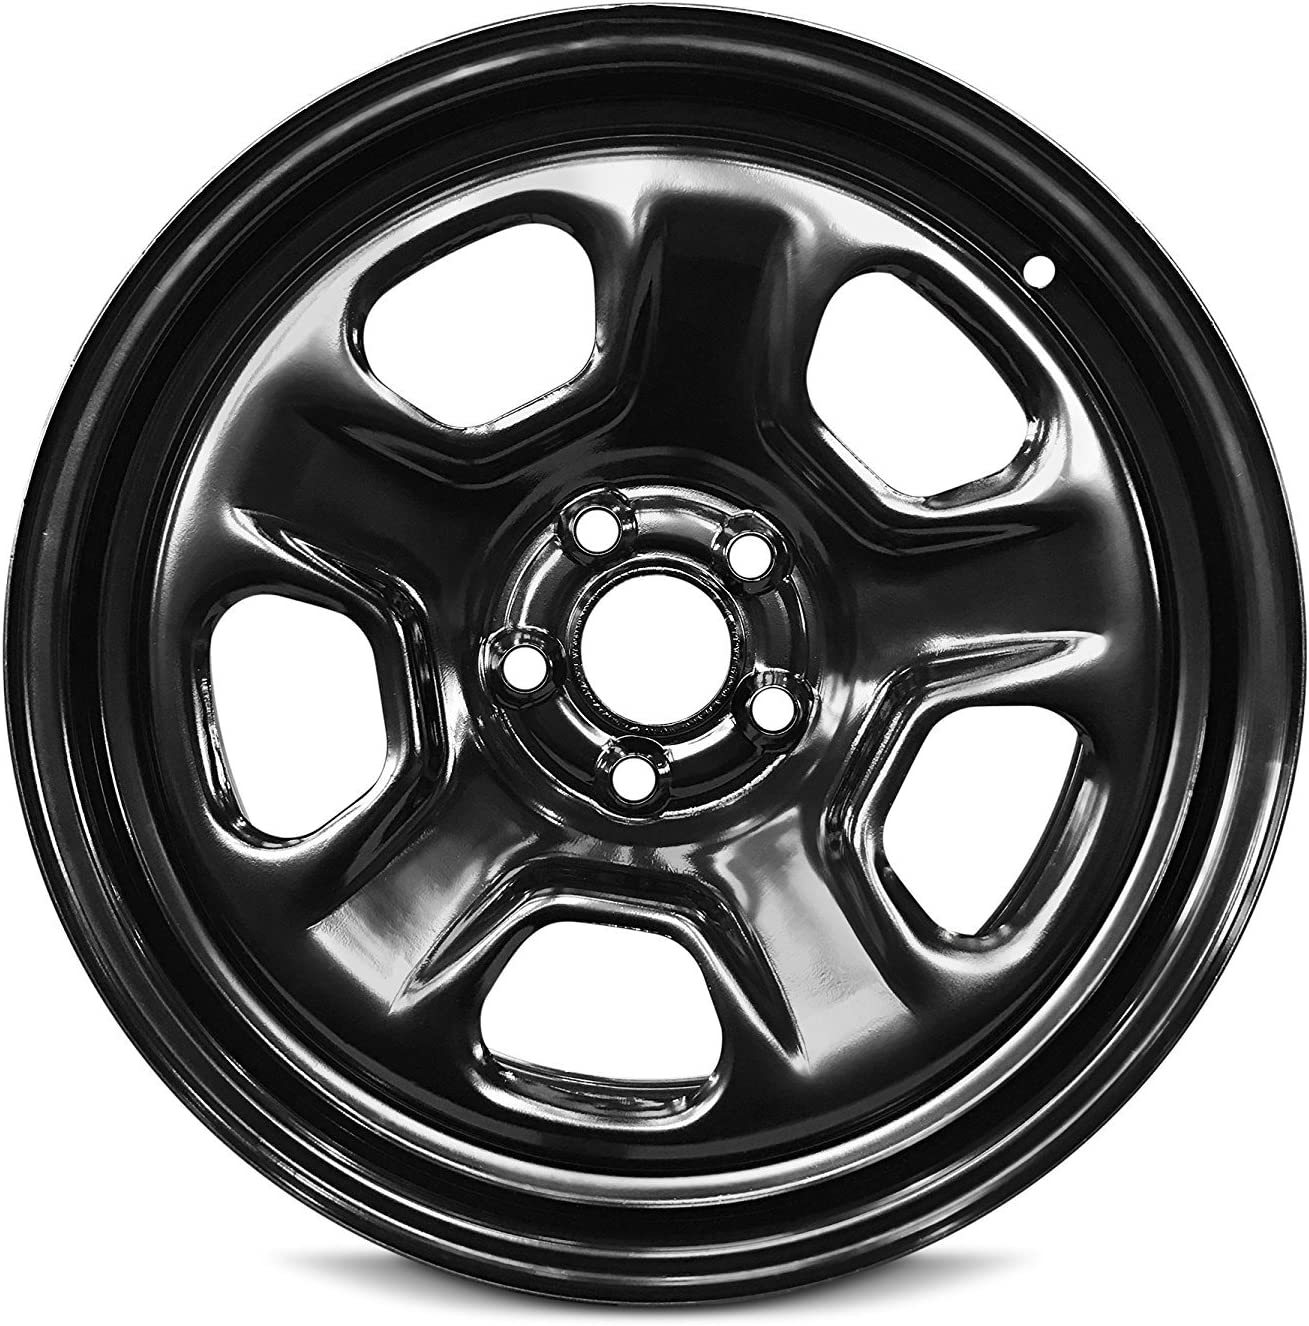 Full-Size Spare Exact OEM Replacement Road Ready Car Wheel For ...